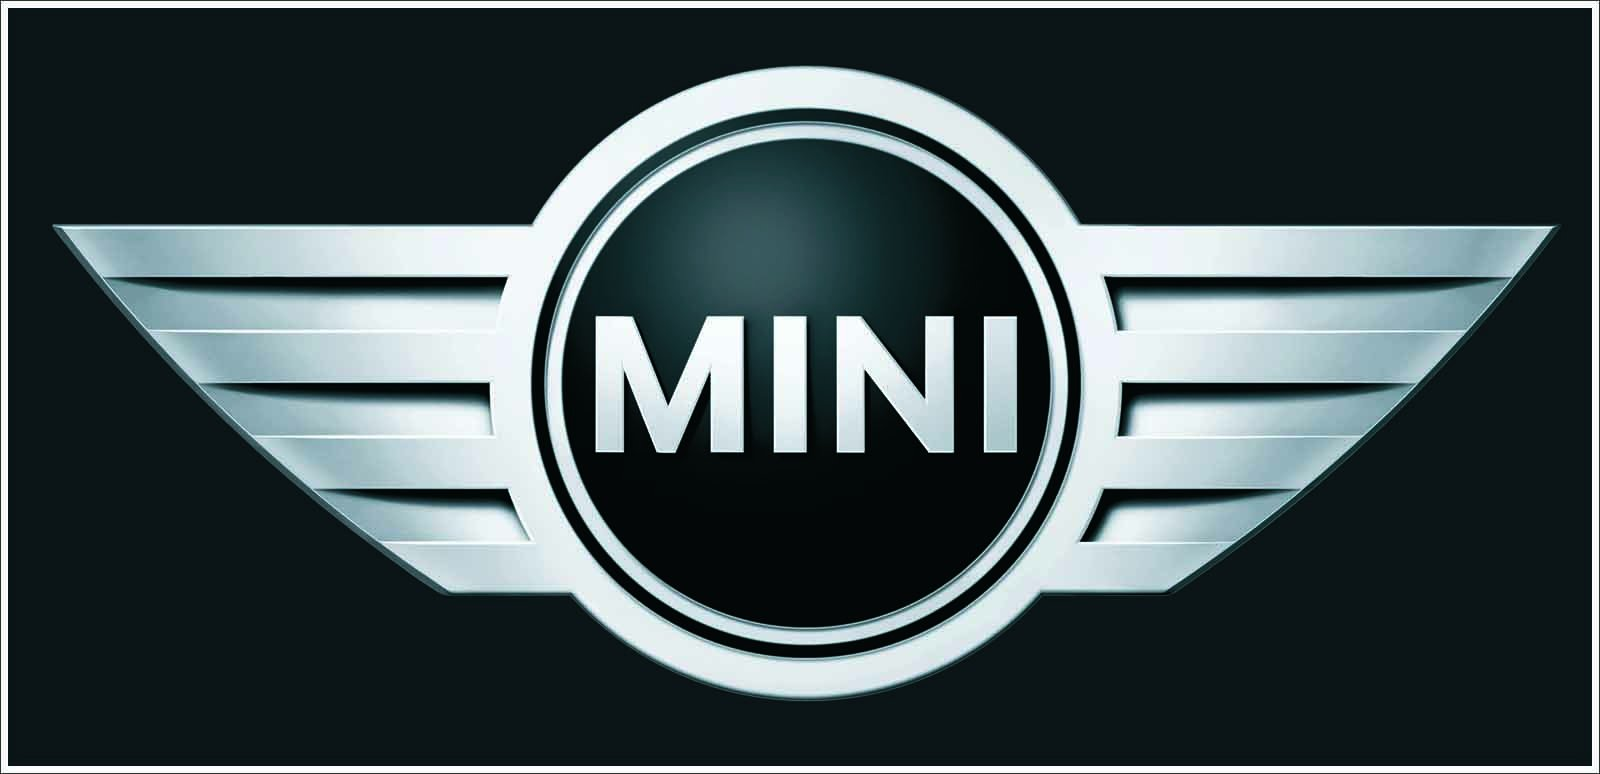 All Wheel Drive Cars List >> Mini Logo Meaning and History [Mini symbol]